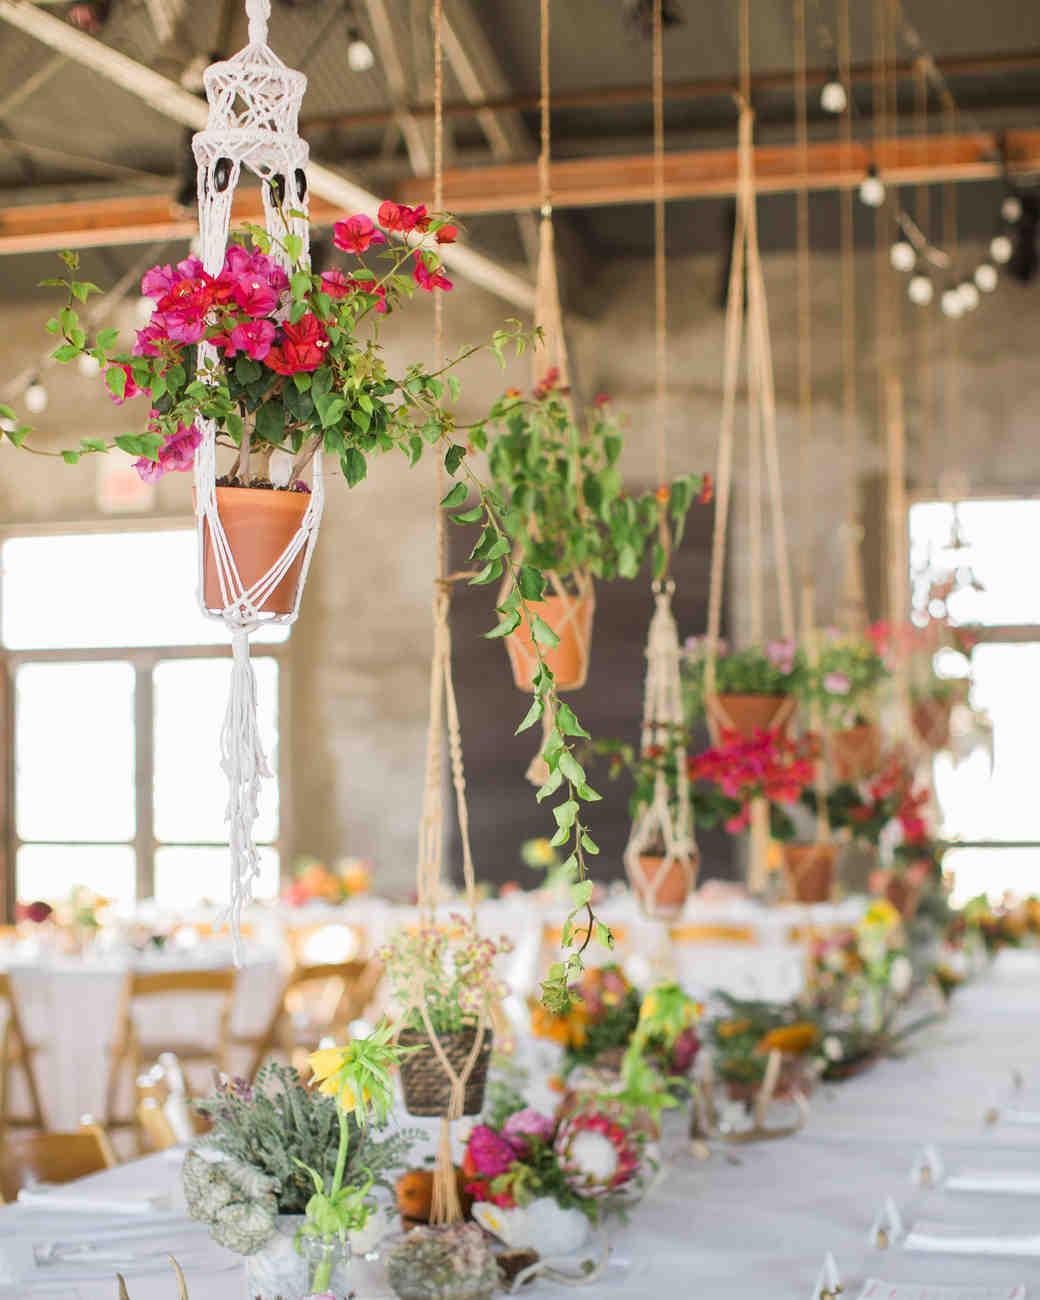 Free Wedding Ideas: Boho-Chic Wedding Ideas For Free-Spirited Brides And